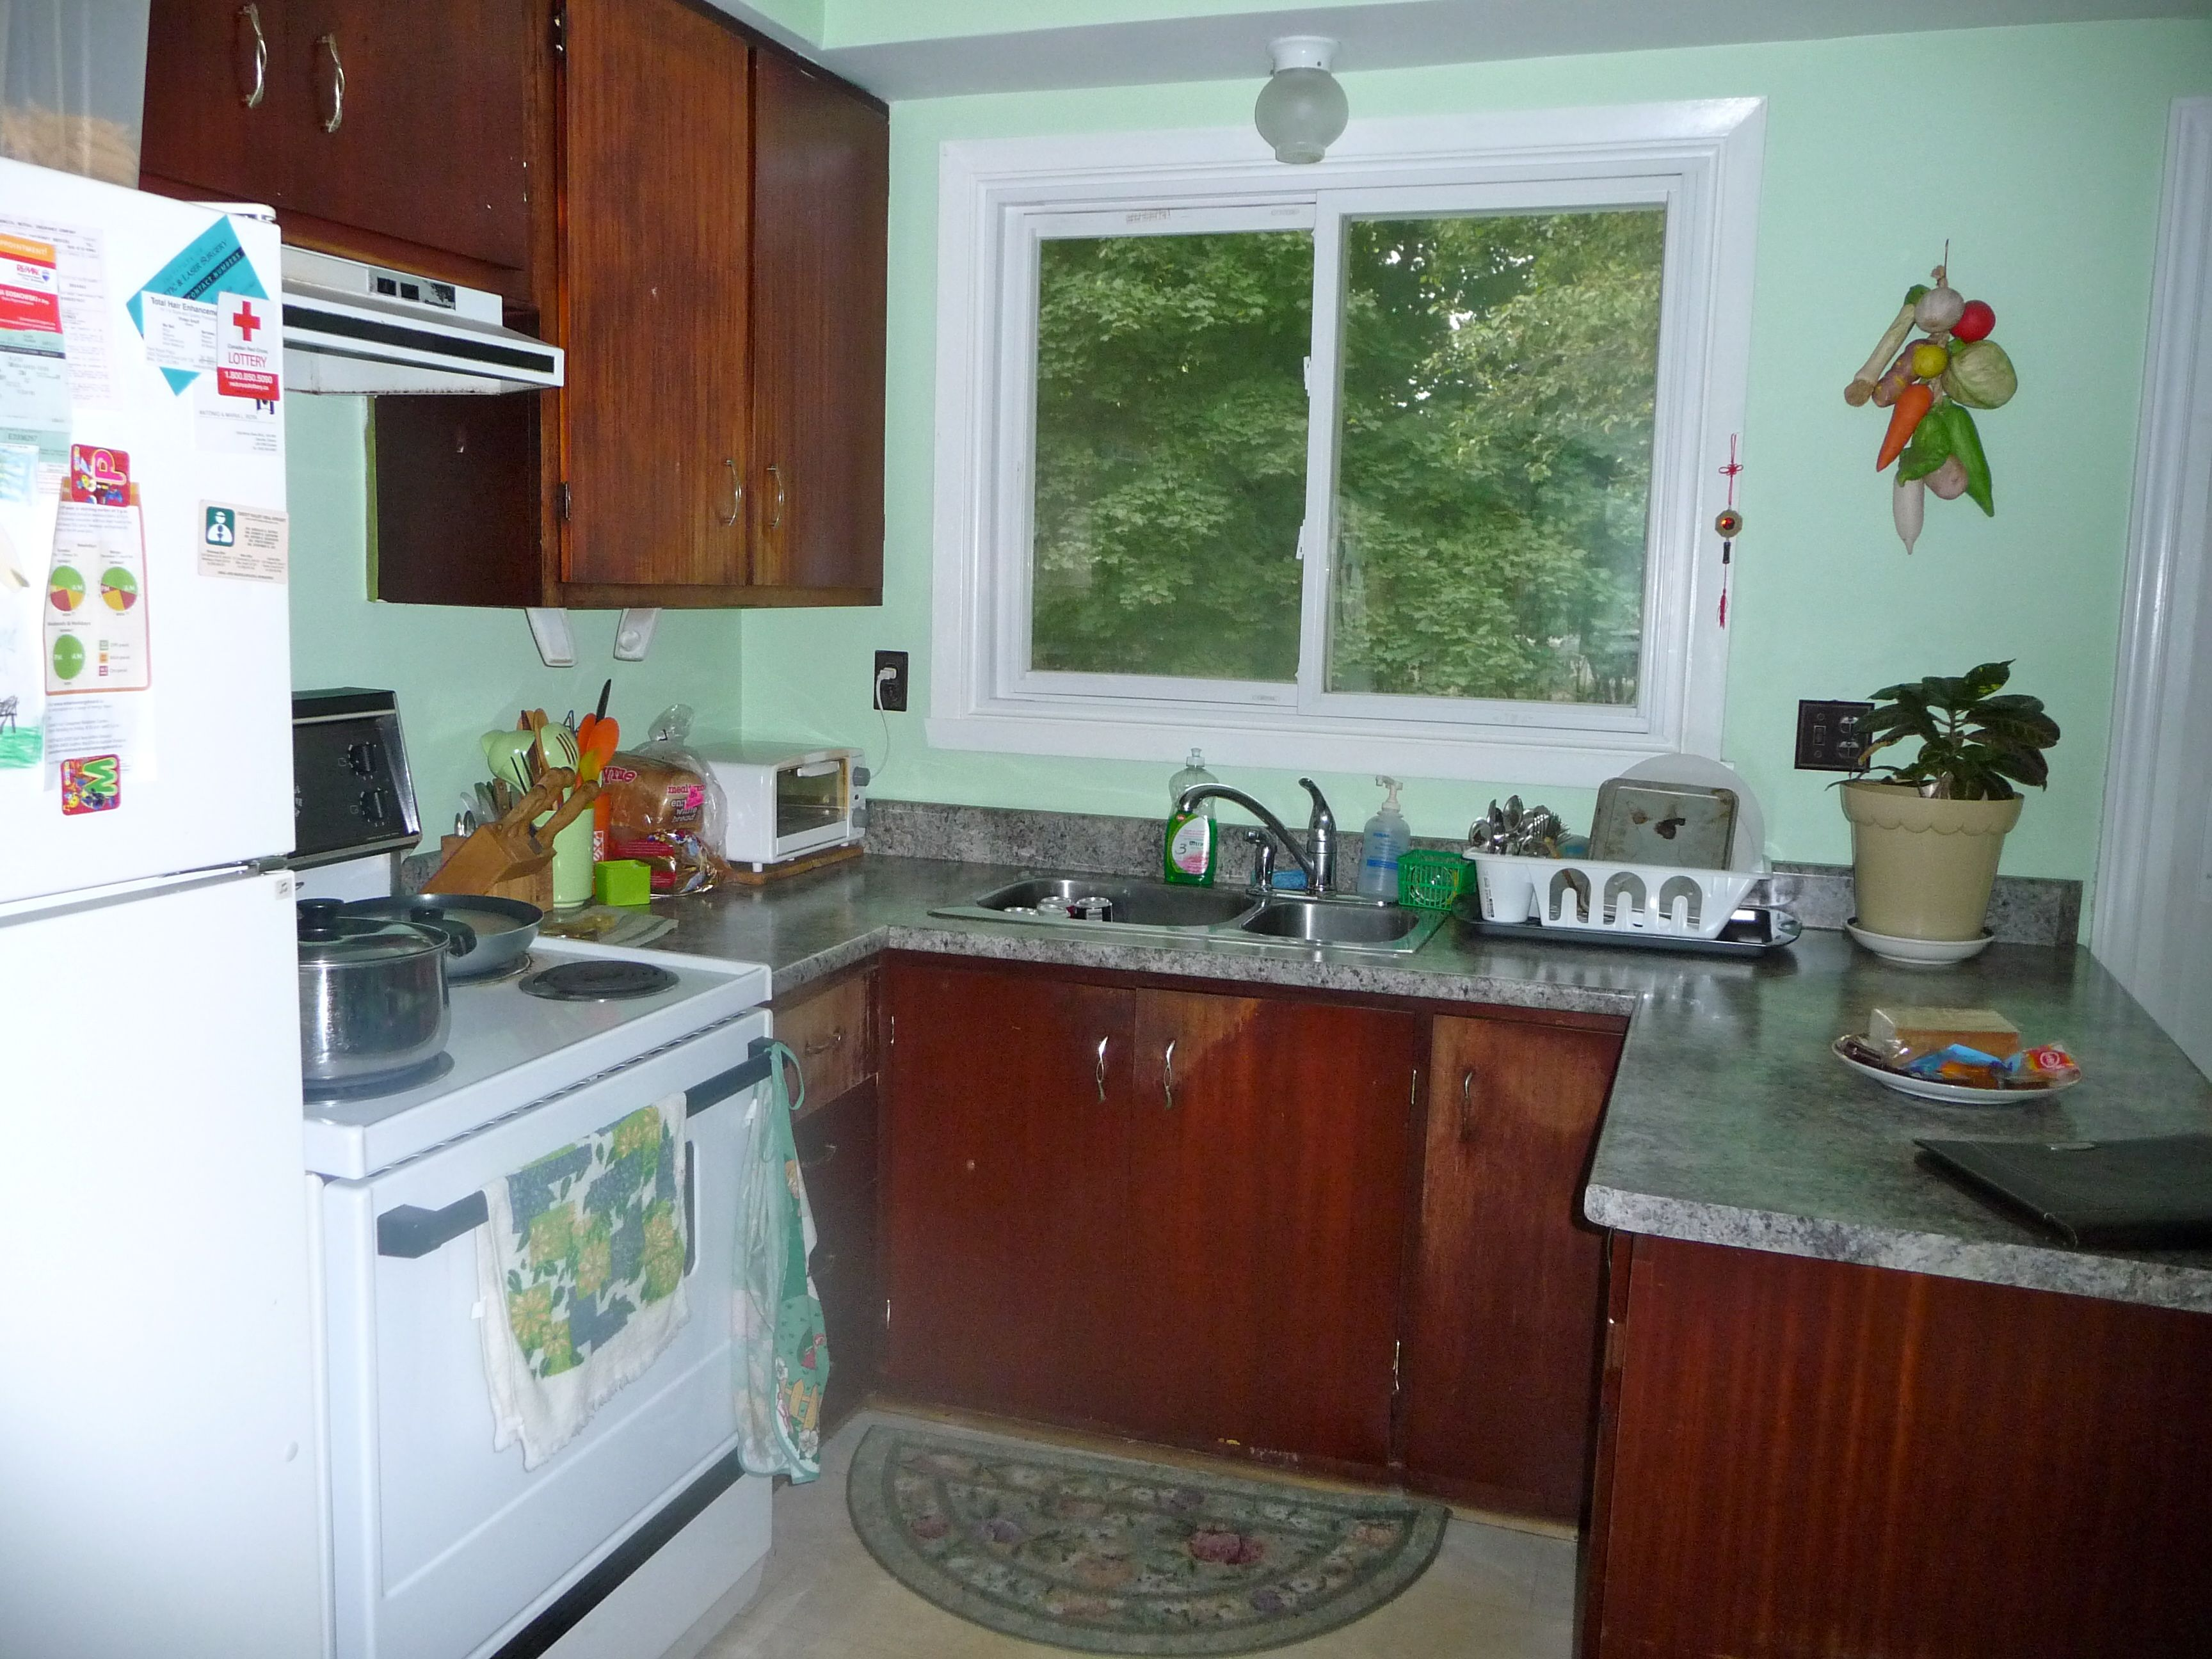 Before: Declutter kitchen counters, remove small knick knacks ...